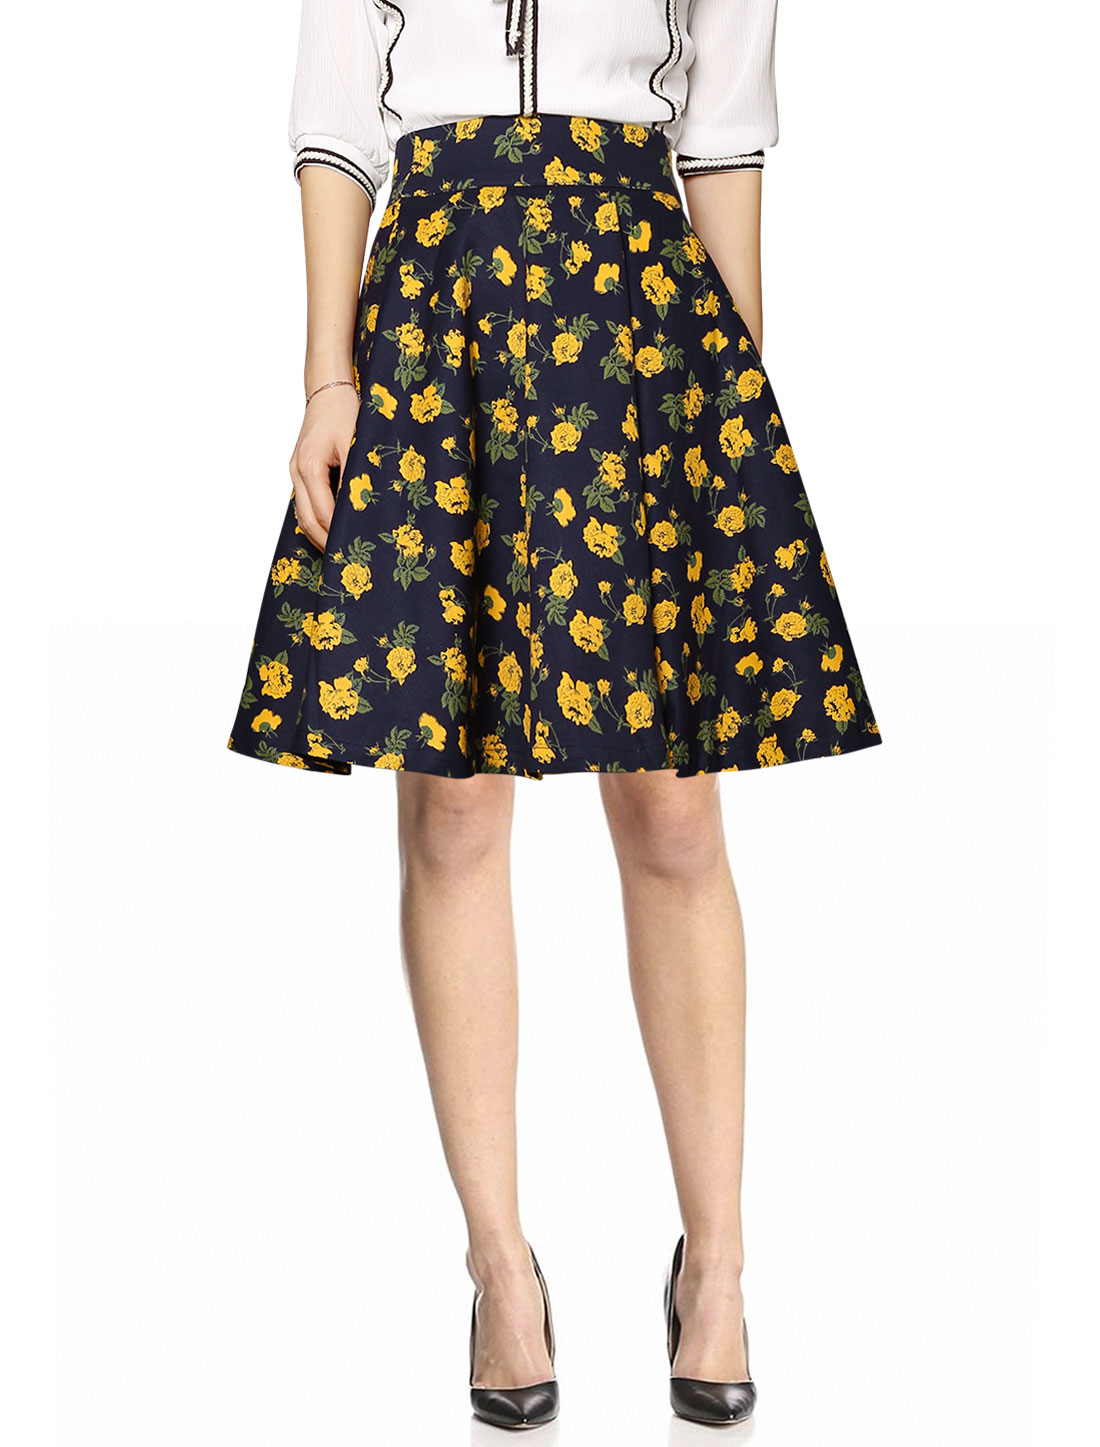 Ladies Retro Floral Prints High Waist Above Knee Full Skirts Navy Blue Yellow M